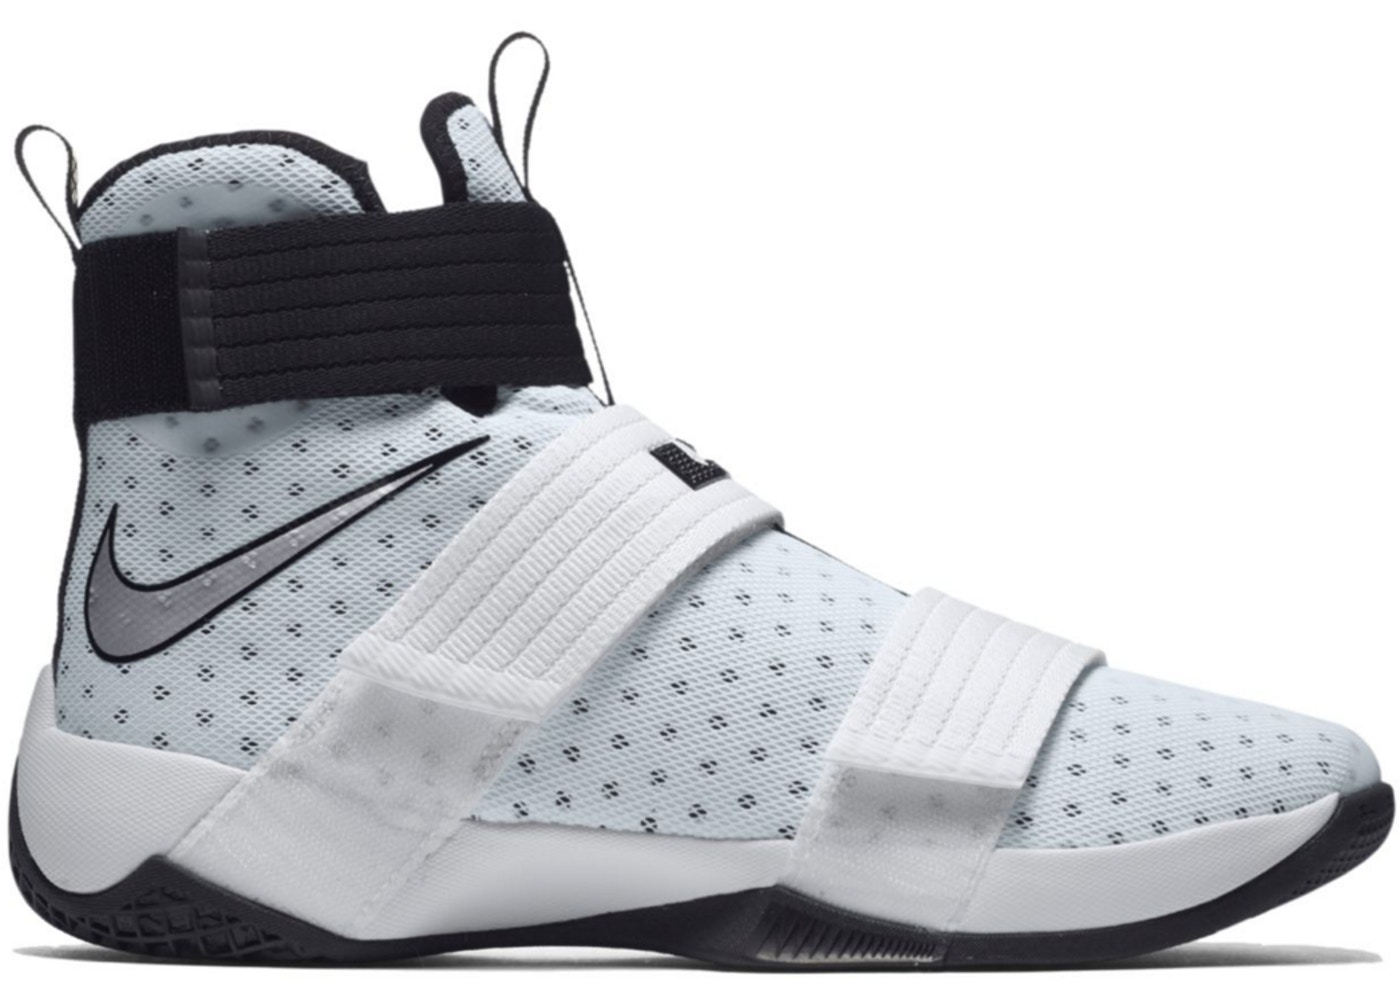 Nike LeBron Zoom Soldier Shoes - New Highest Bids 76beef997